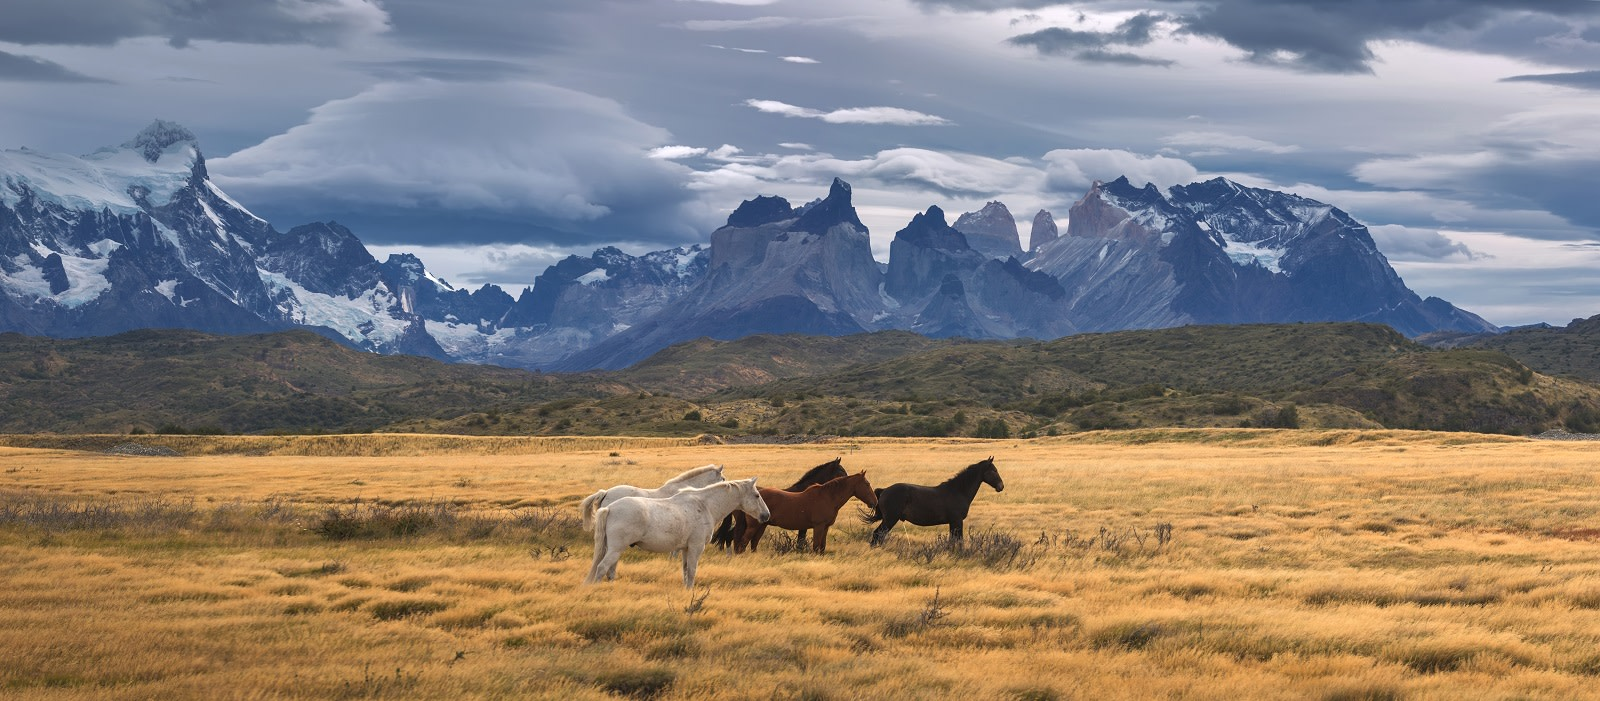 Enchanting Travels Torres del Paine National Park, Patagonia, Chile